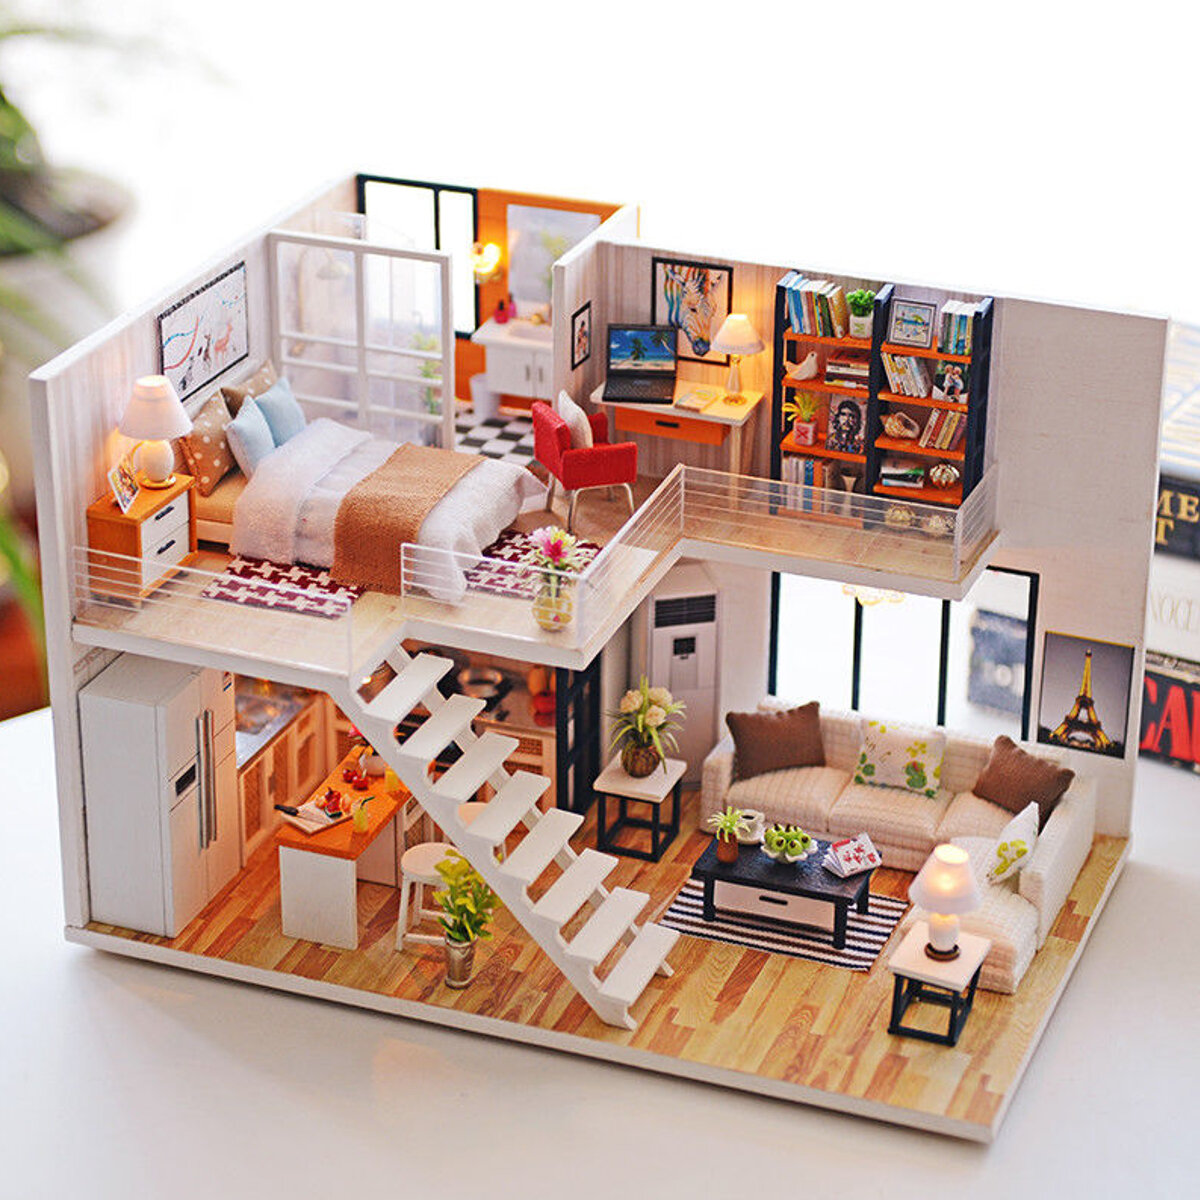 Superb Loft Apartments Miniature Dollhouse Wooden Doll House Furniture Led Wiring Digital Resources Cettecompassionincorg